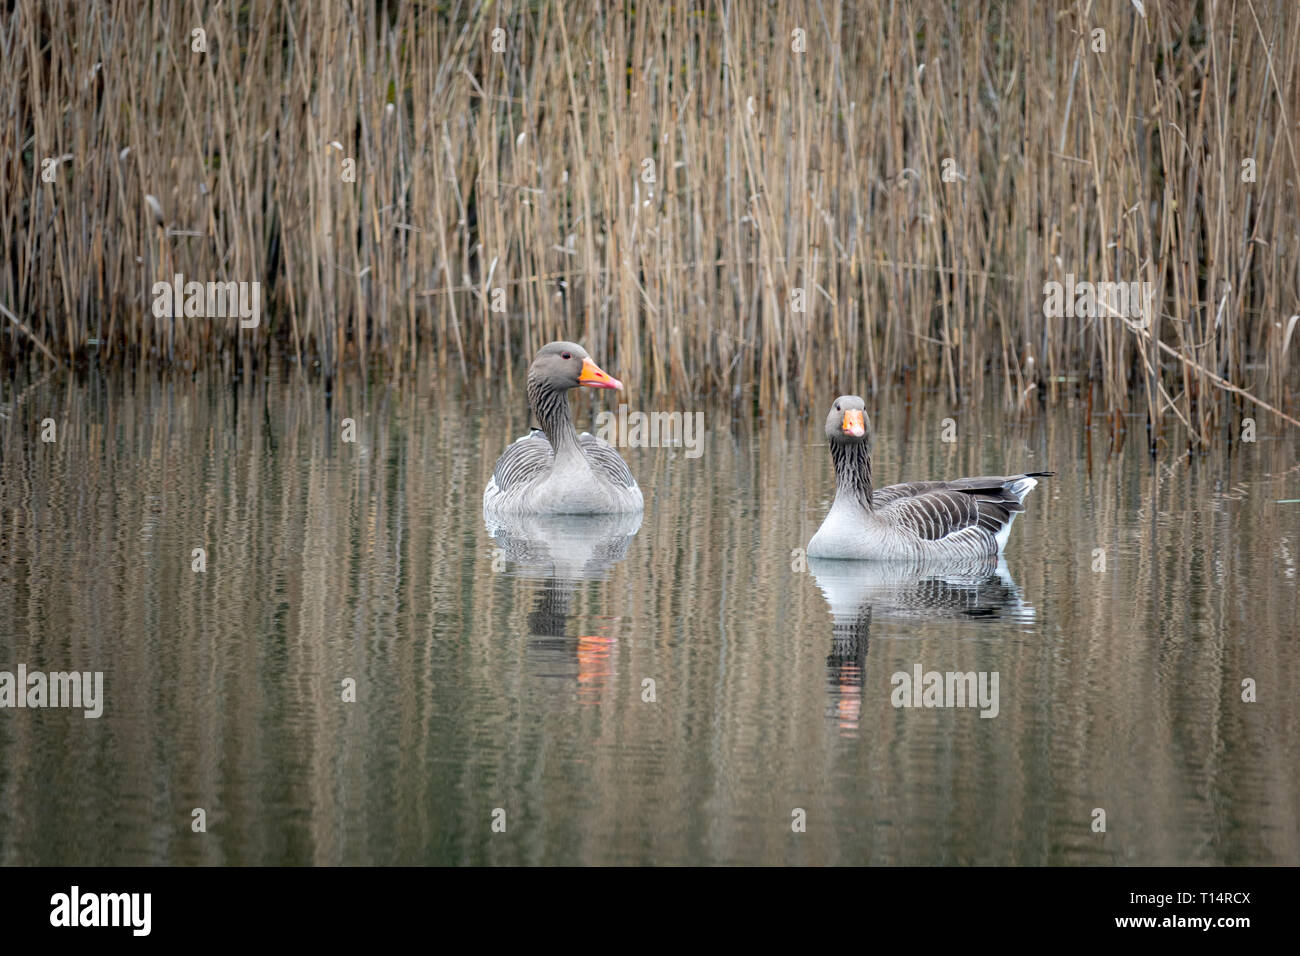 2 grey geese swimming on a lake - Stock Image